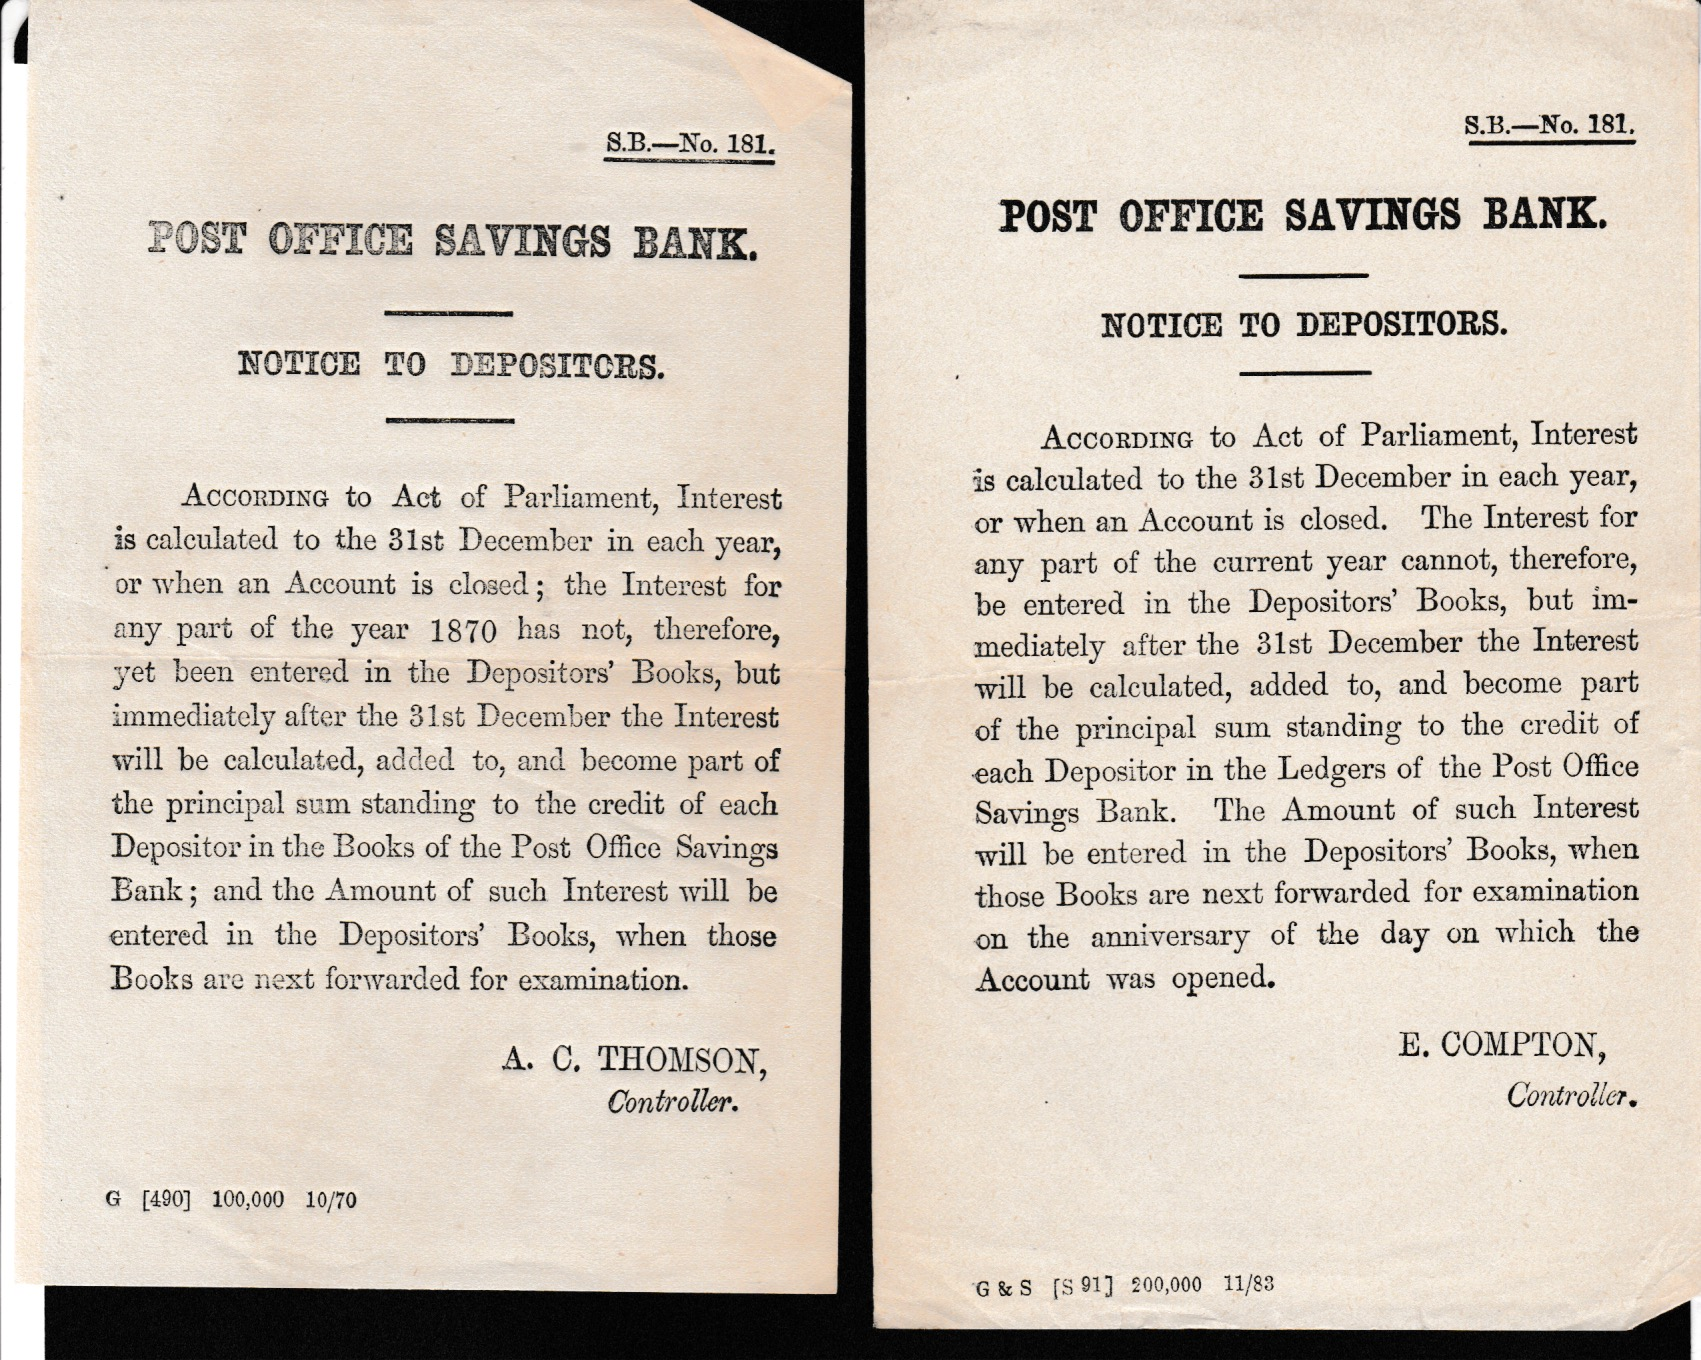 G.B. - Acts & Notices - Image 5 of 6